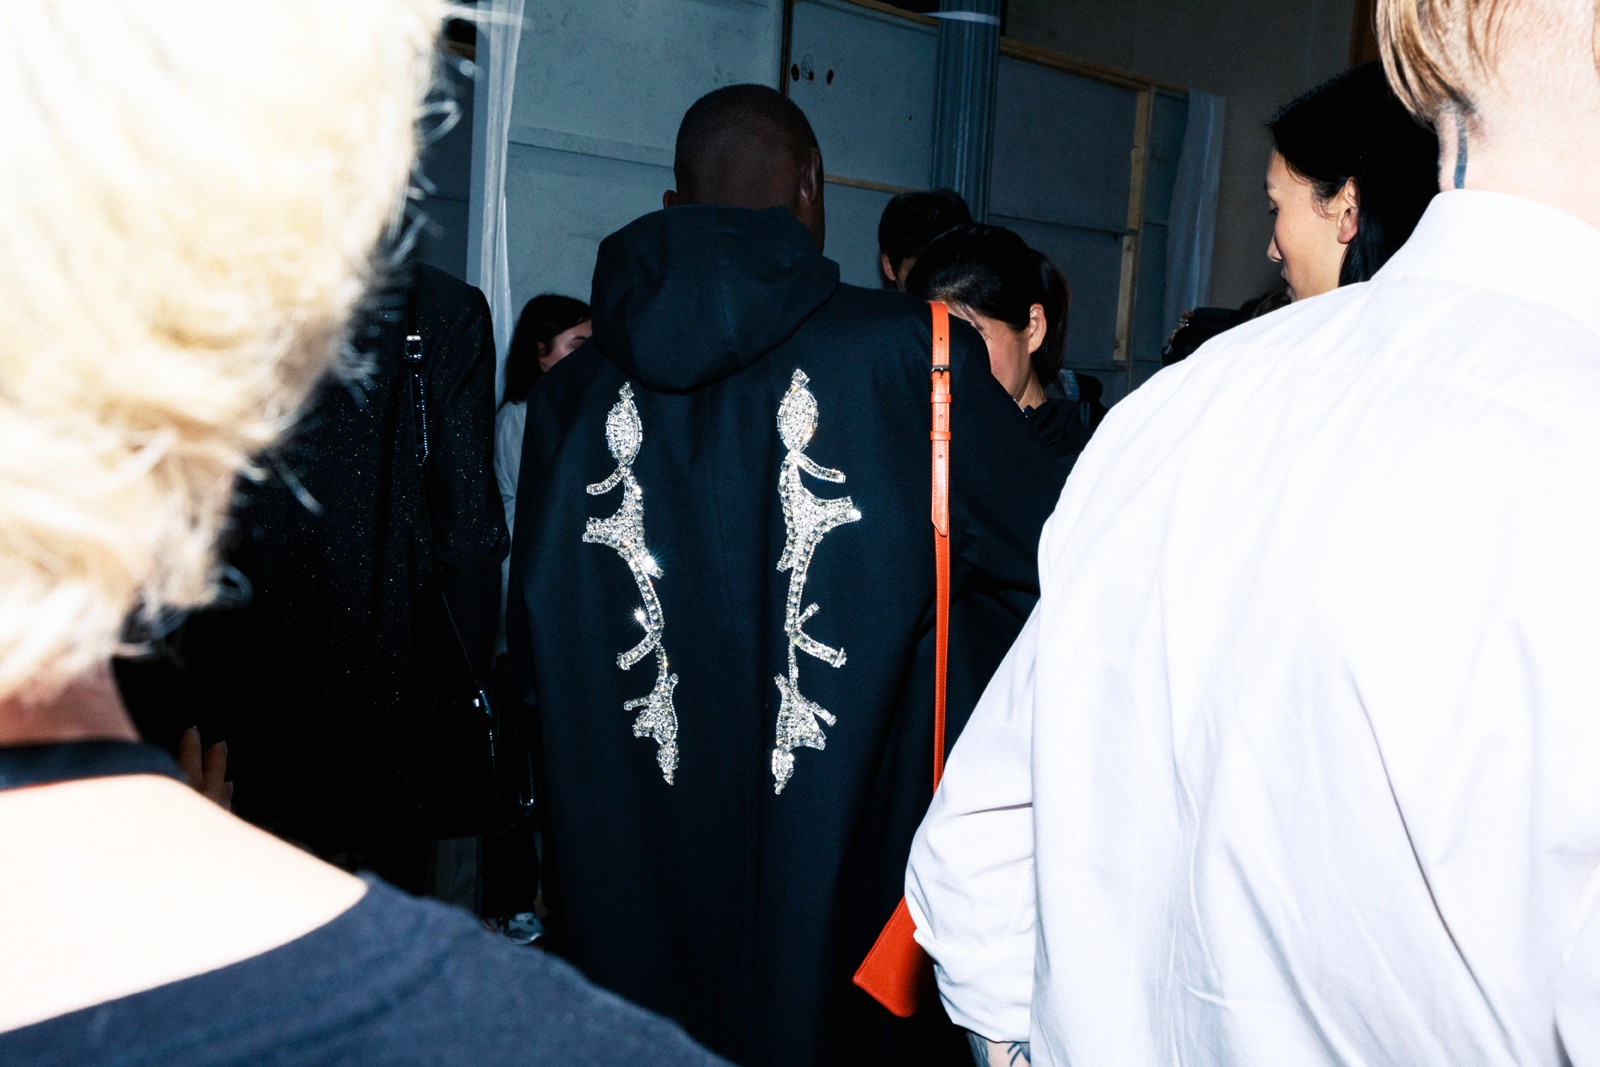 1017 ALYX 9SM Fall Winter 2020 Runway Collection Paris Fashion Week Men's Release Info Date Look image Full Matthew M Williams Backstage